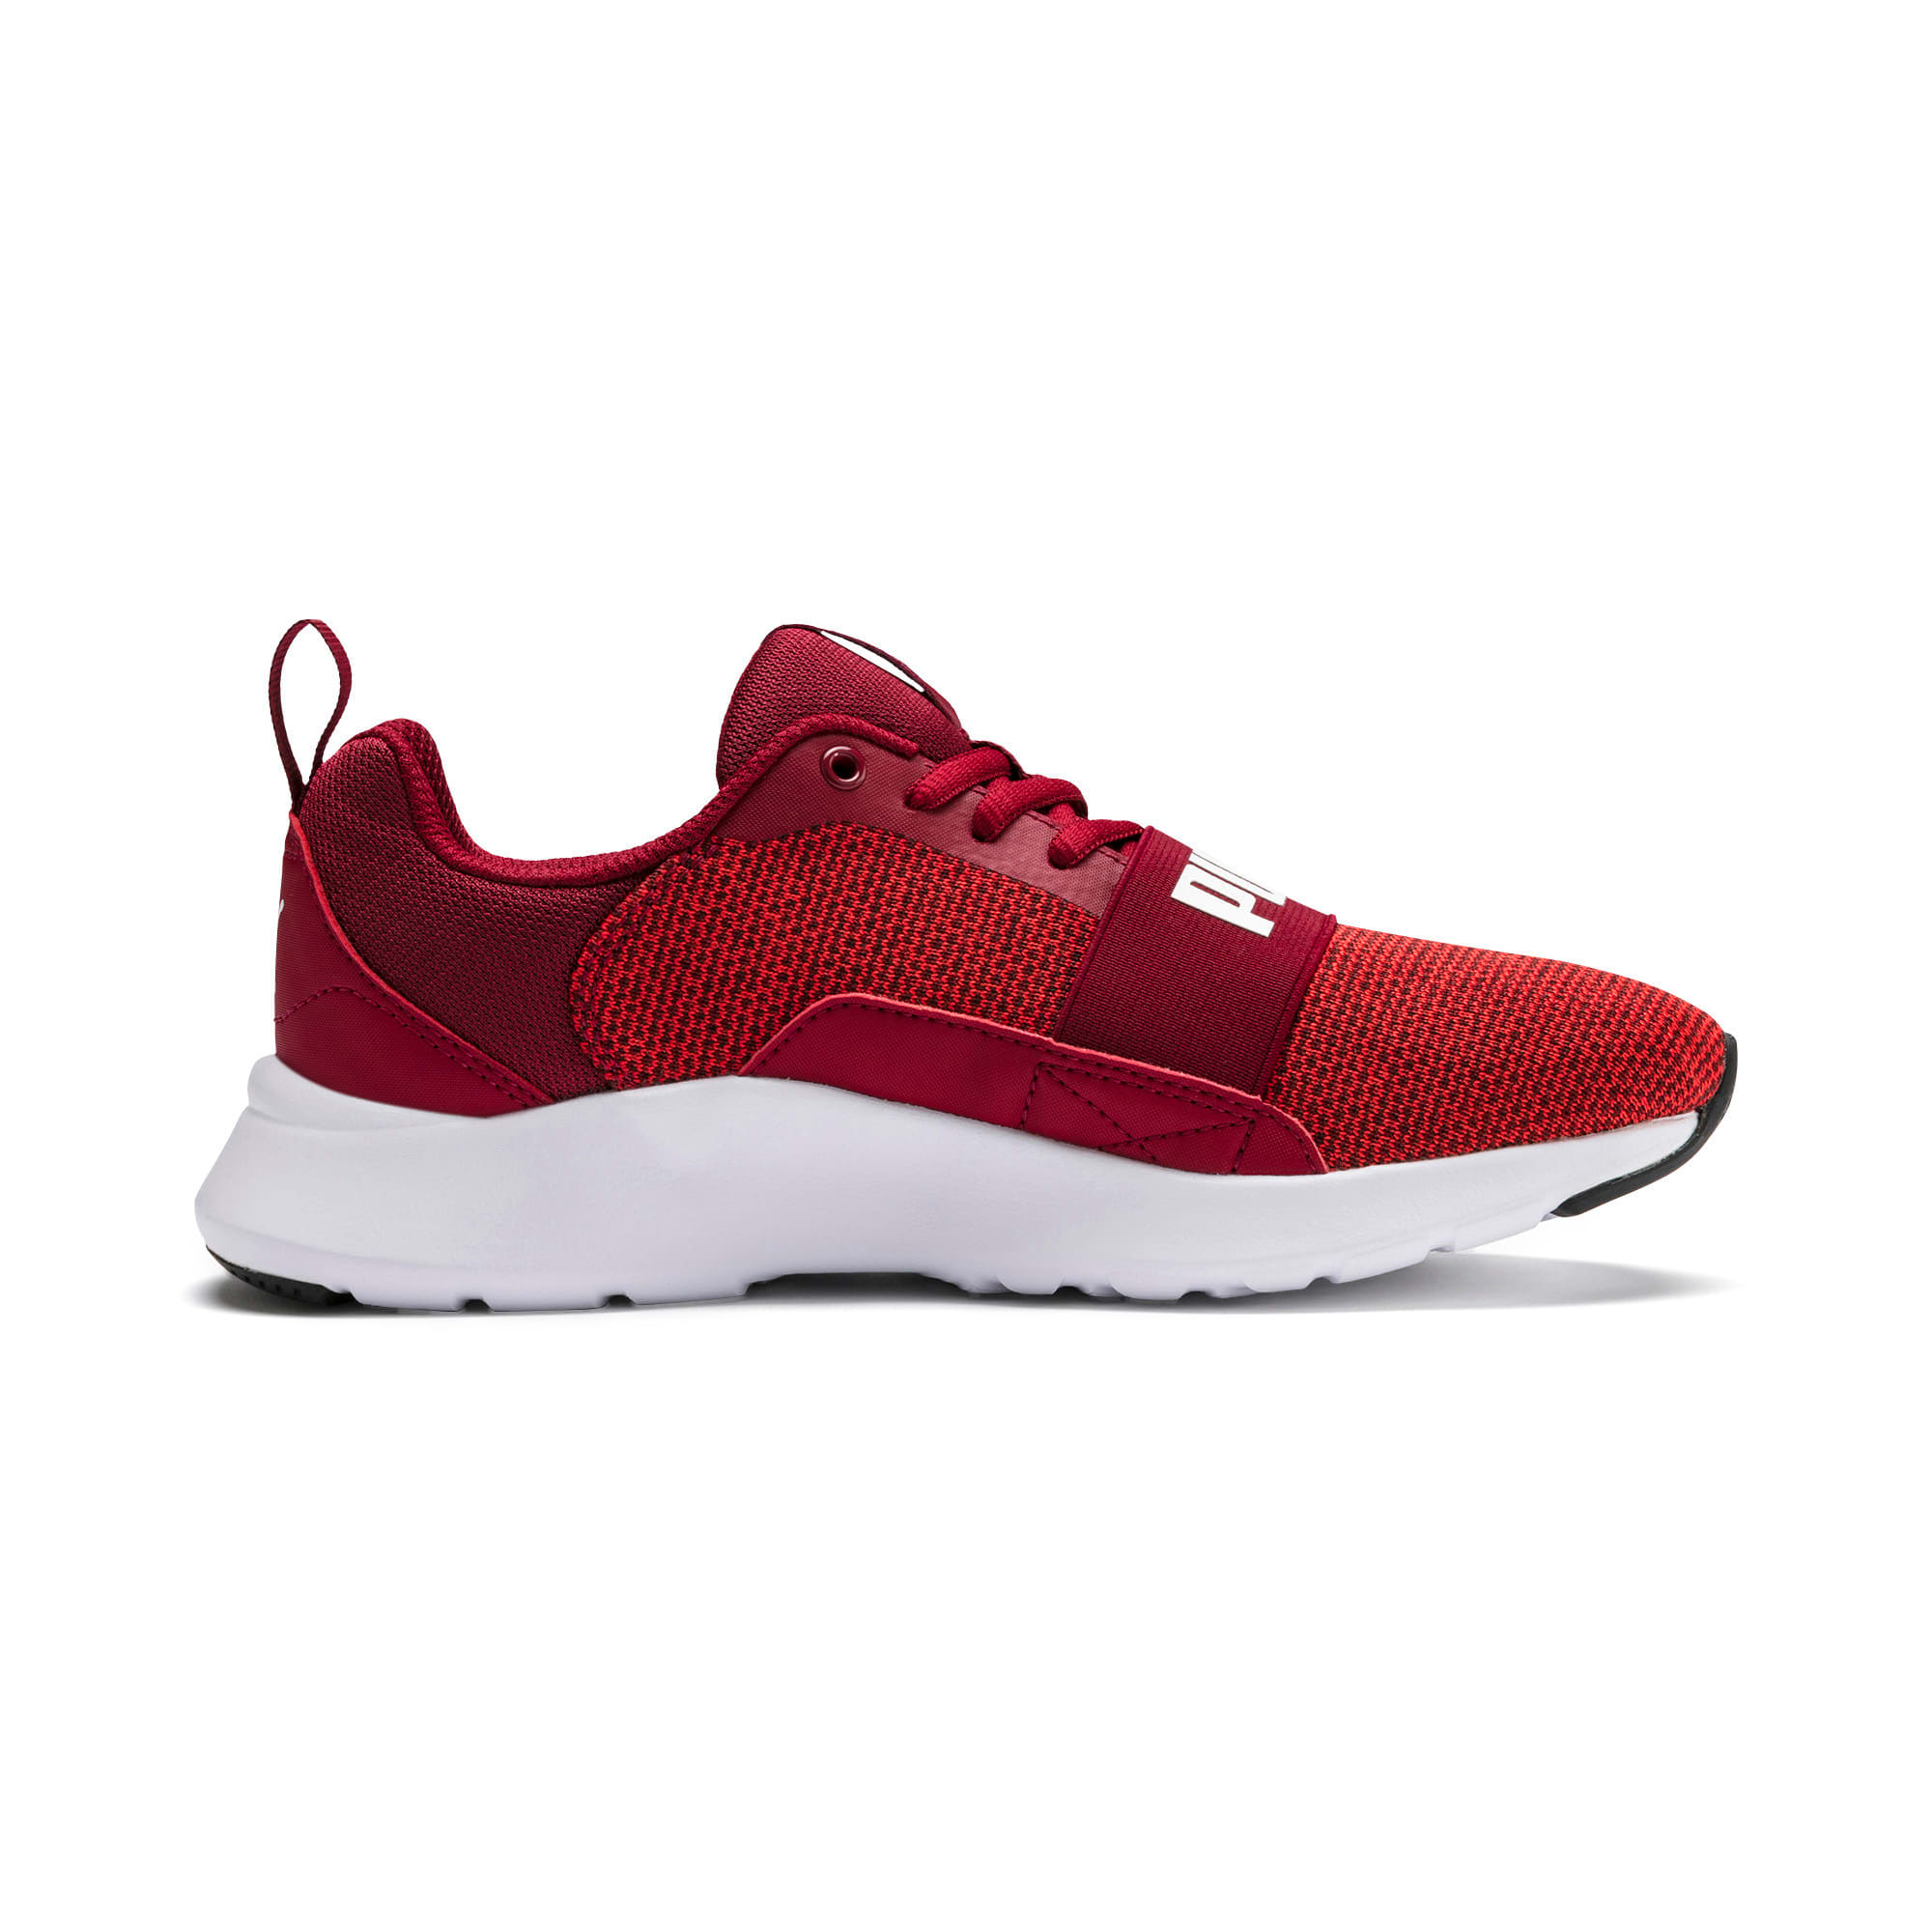 Thumbnail 5 of Wired Knit Youth Trainers, Rhubarb-Puma White, medium-IND